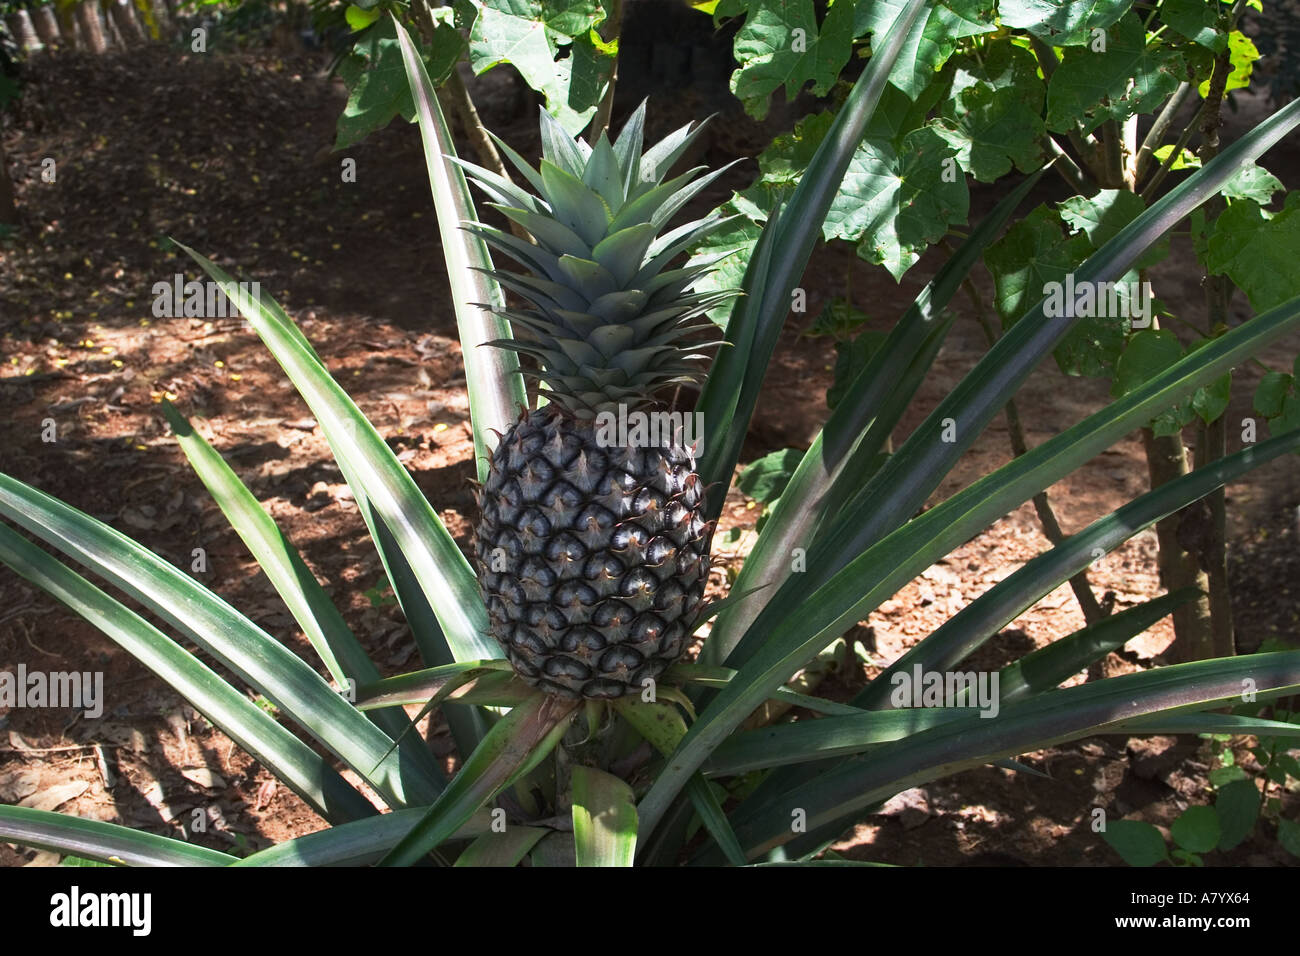 Pineapple for fair trade export growing in Ghana West Africa - Stock Image